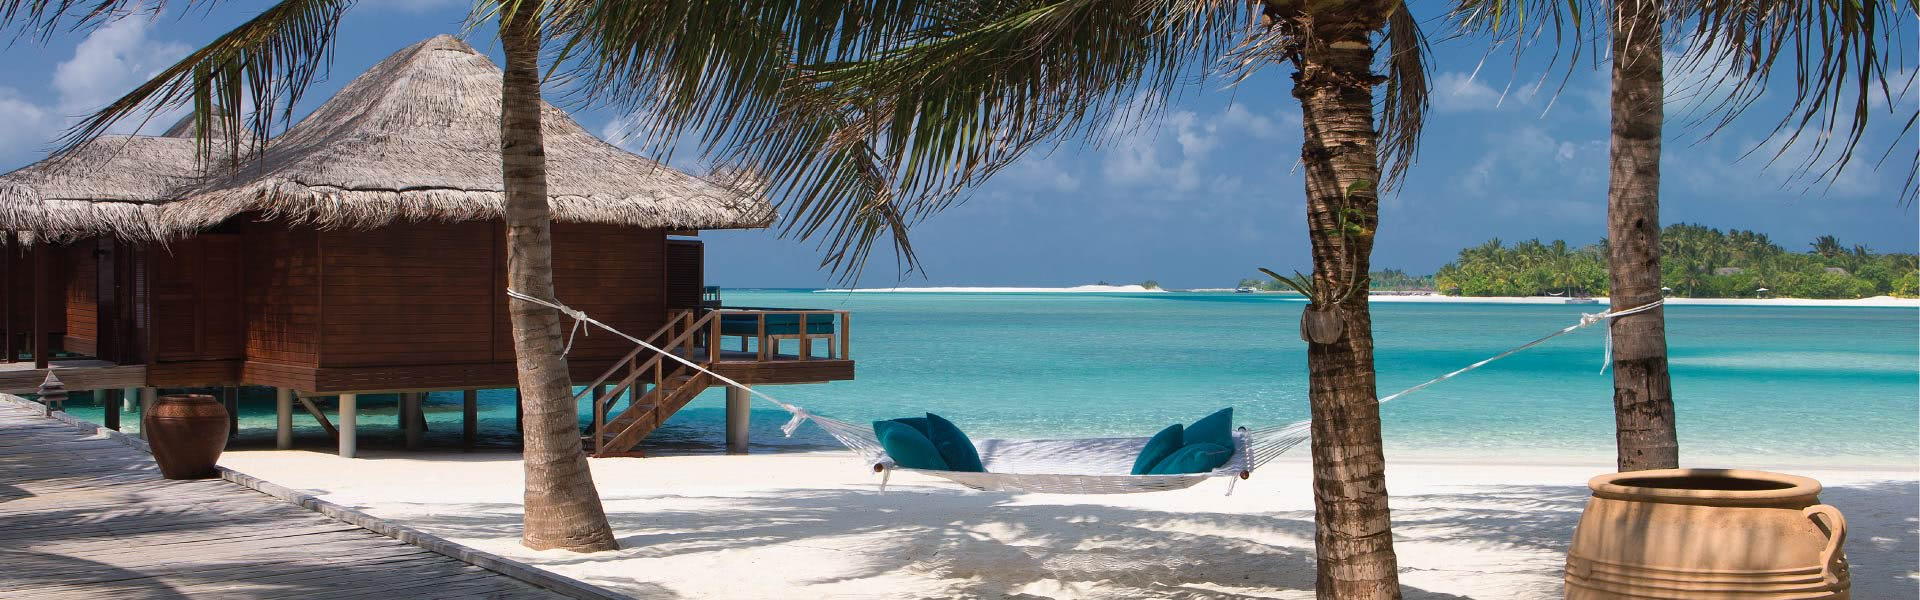 Maldives Bungalow Rooms At Anantara Veli Honeymoon